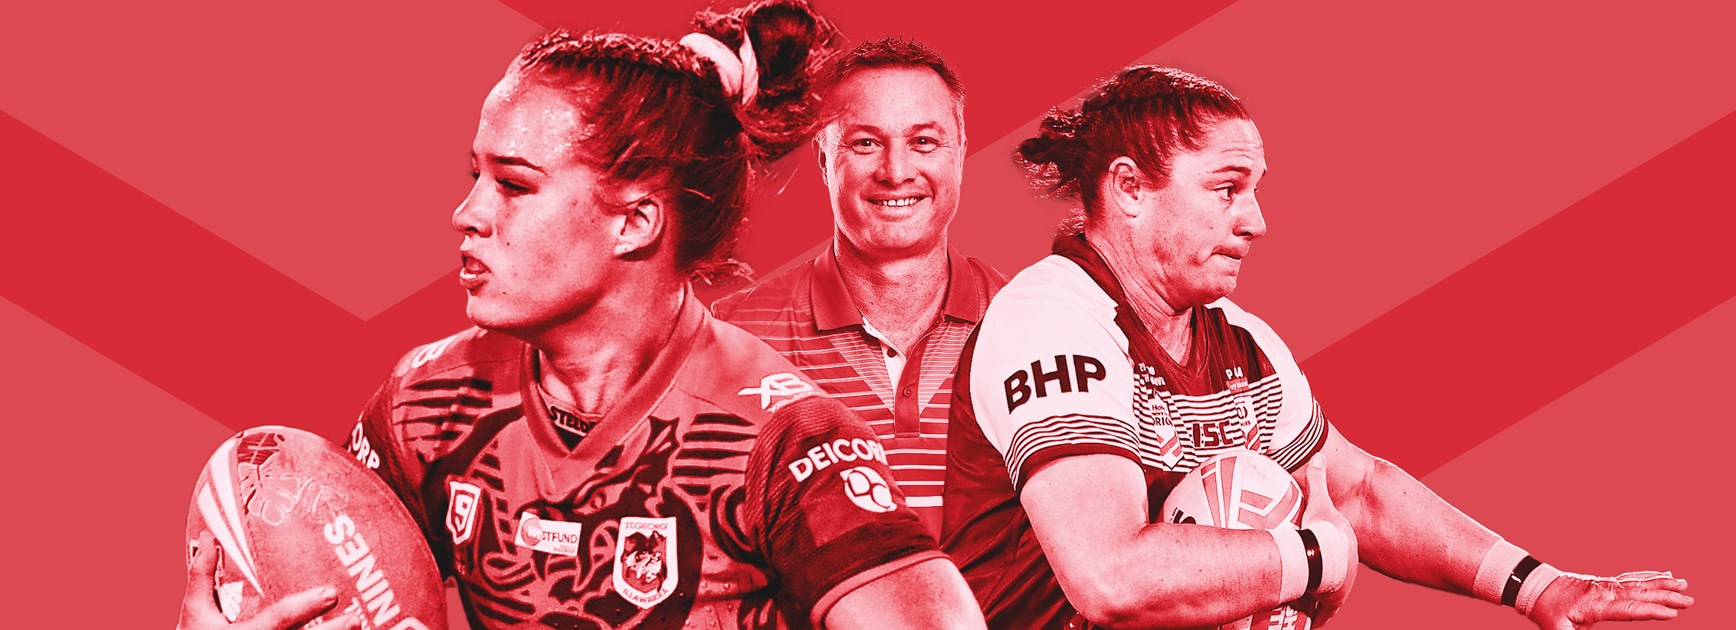 NRLW Dragons season preview: The quest to go one better